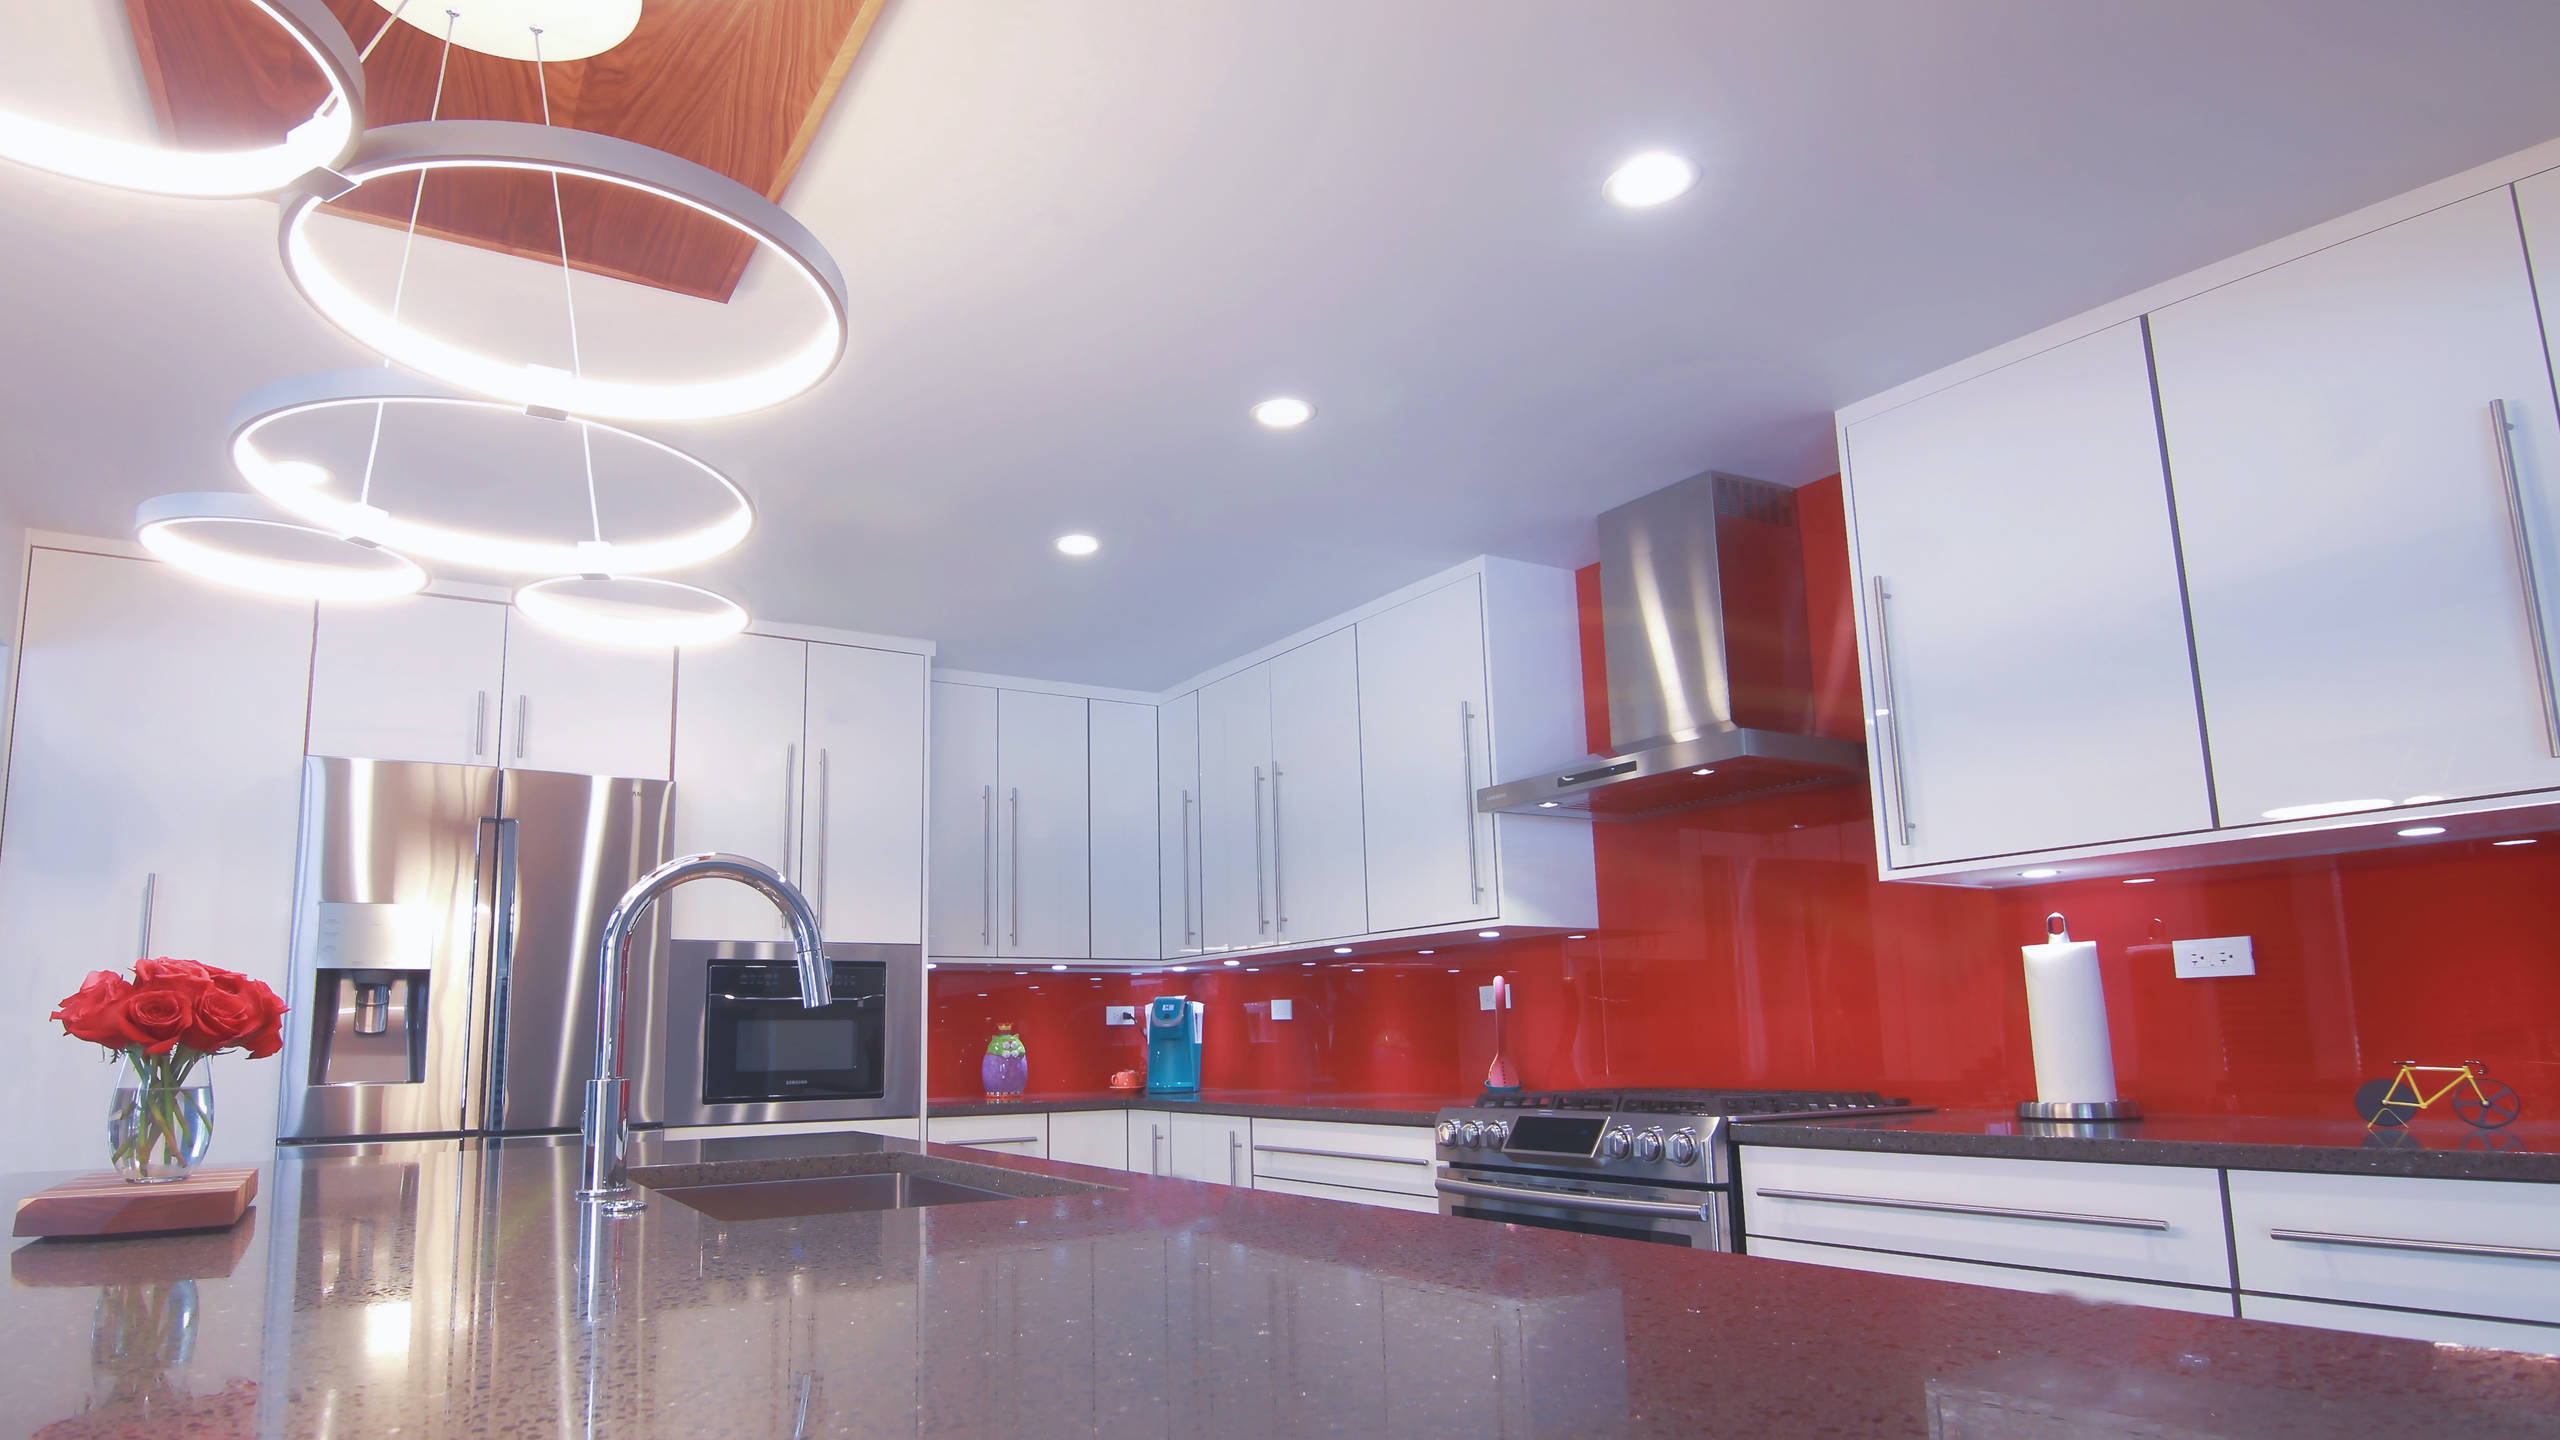 75 Beautiful Purple Kitchen With Red Backsplash Pictures Ideas January 2021 Houzz